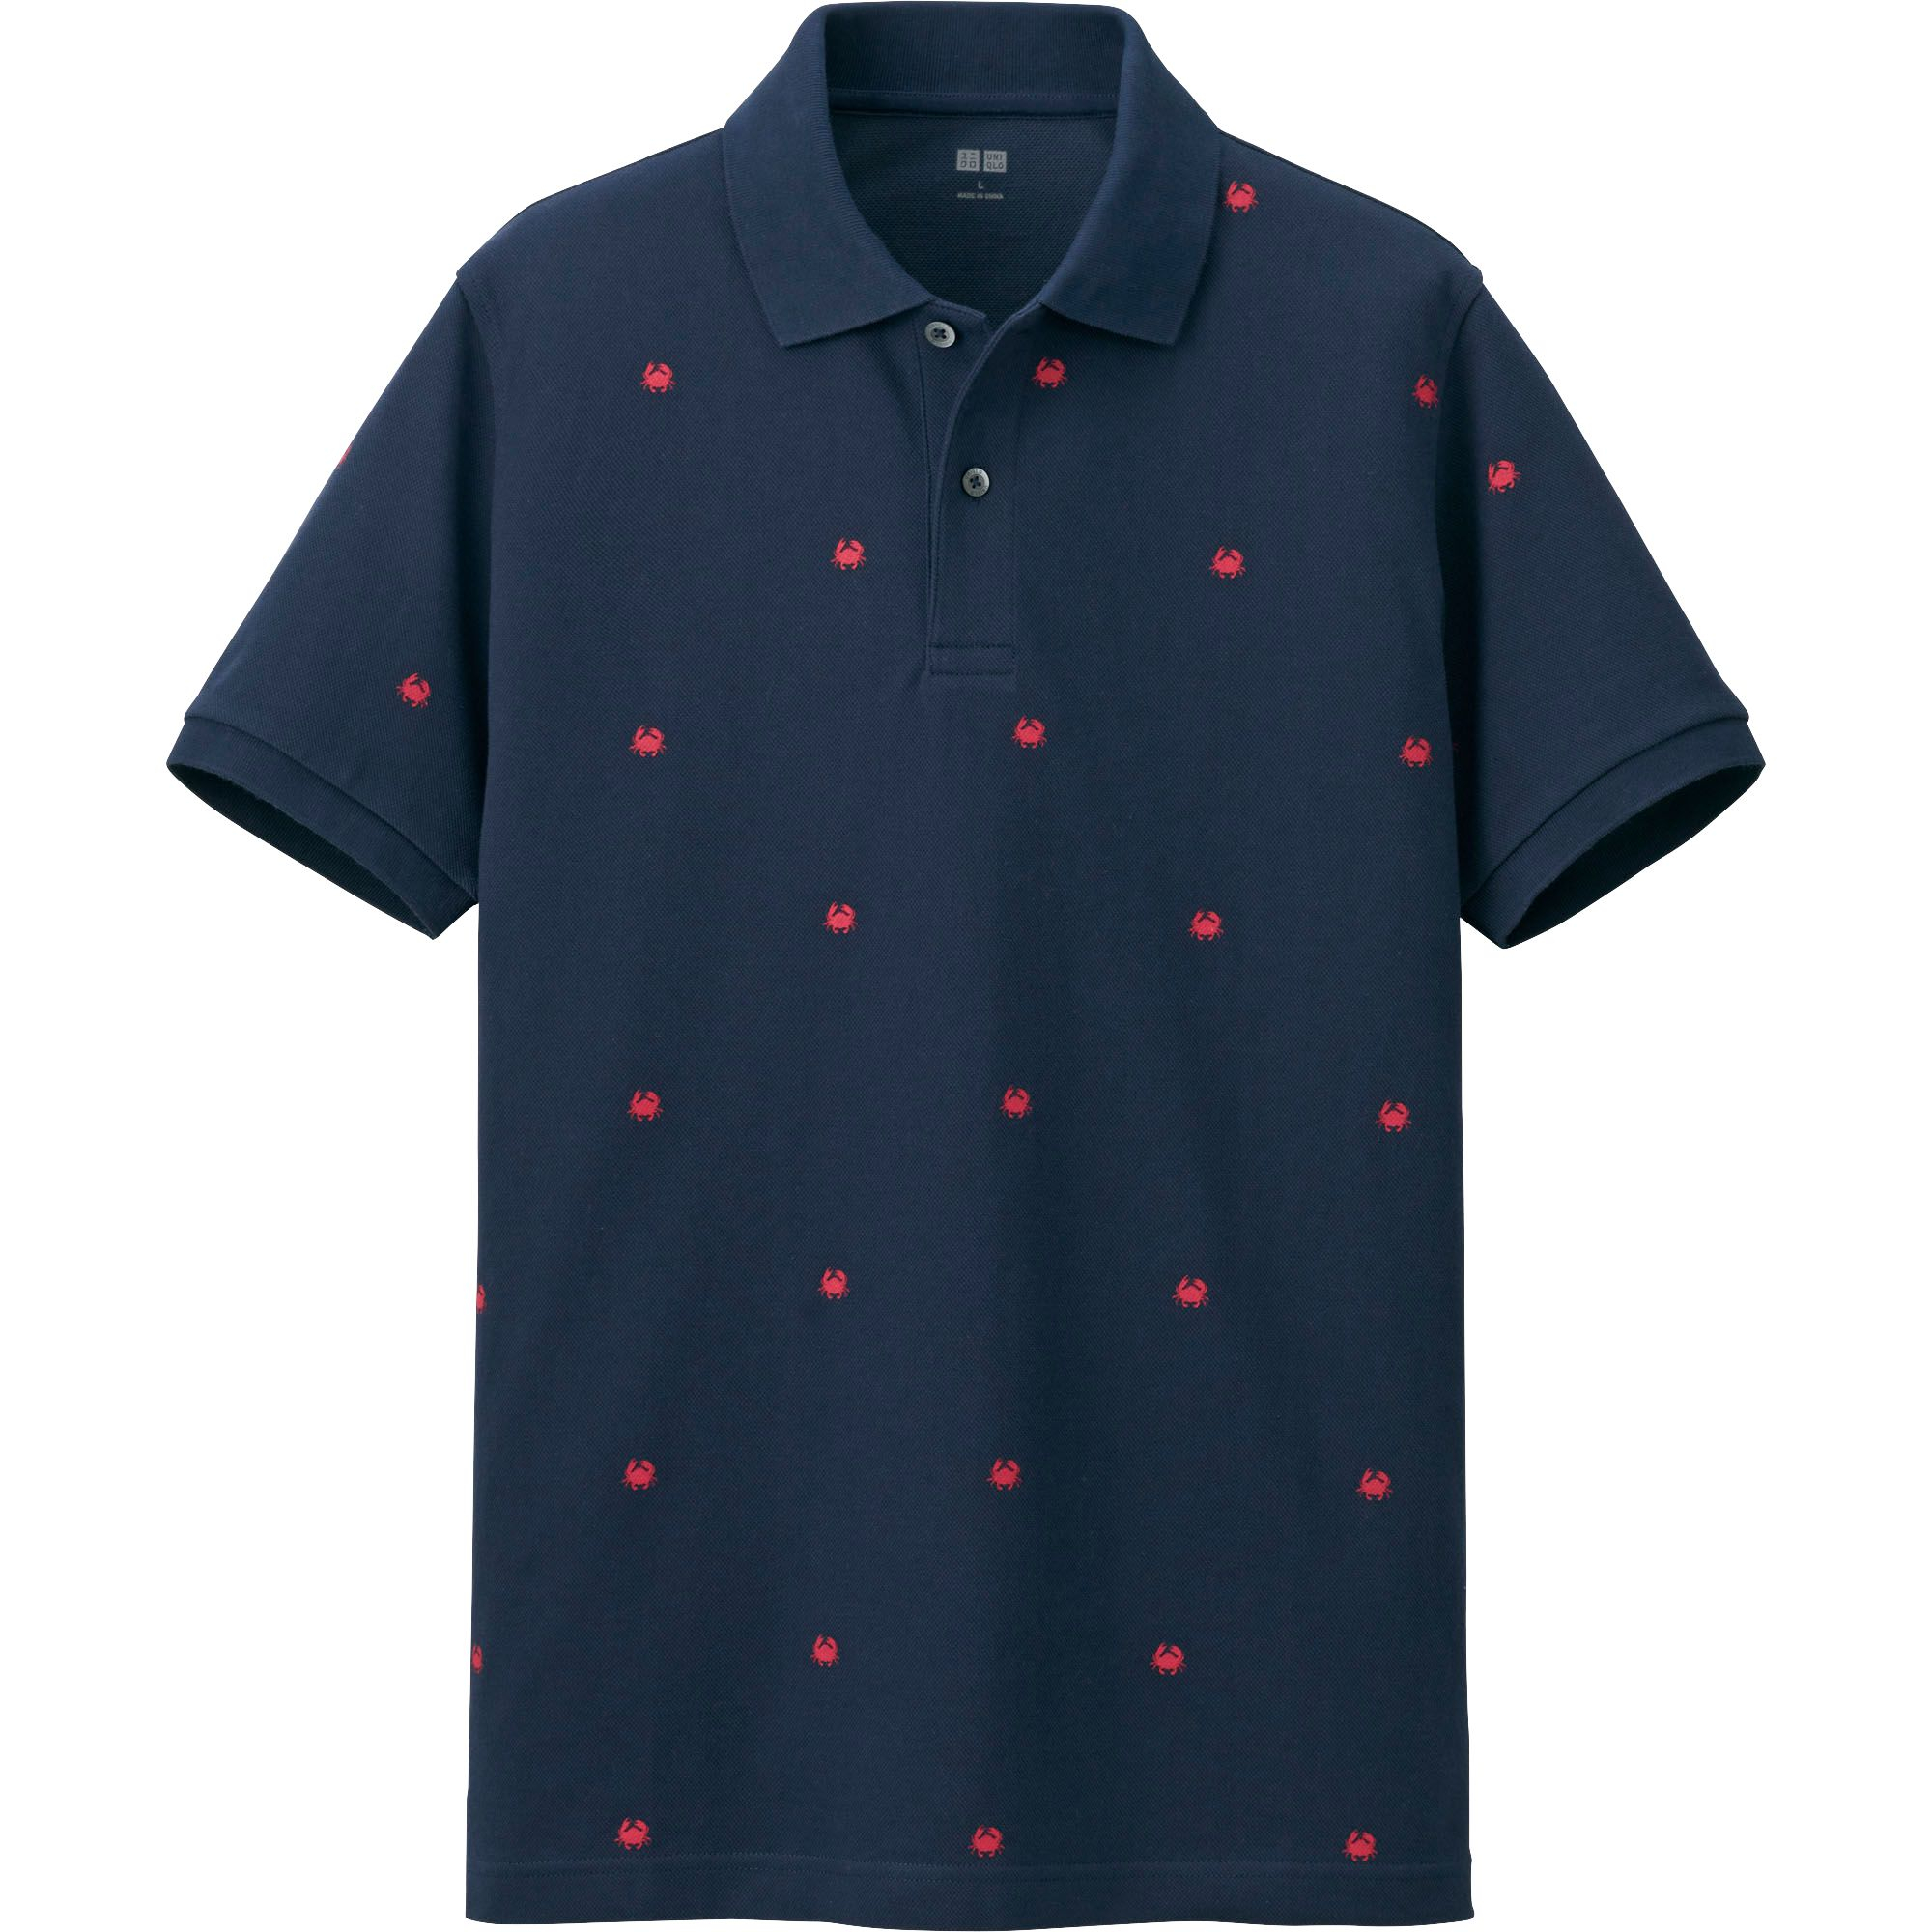 Uniqlo dry pique printed short sleeve polo shirt in blue for Printed short sleeve shirts